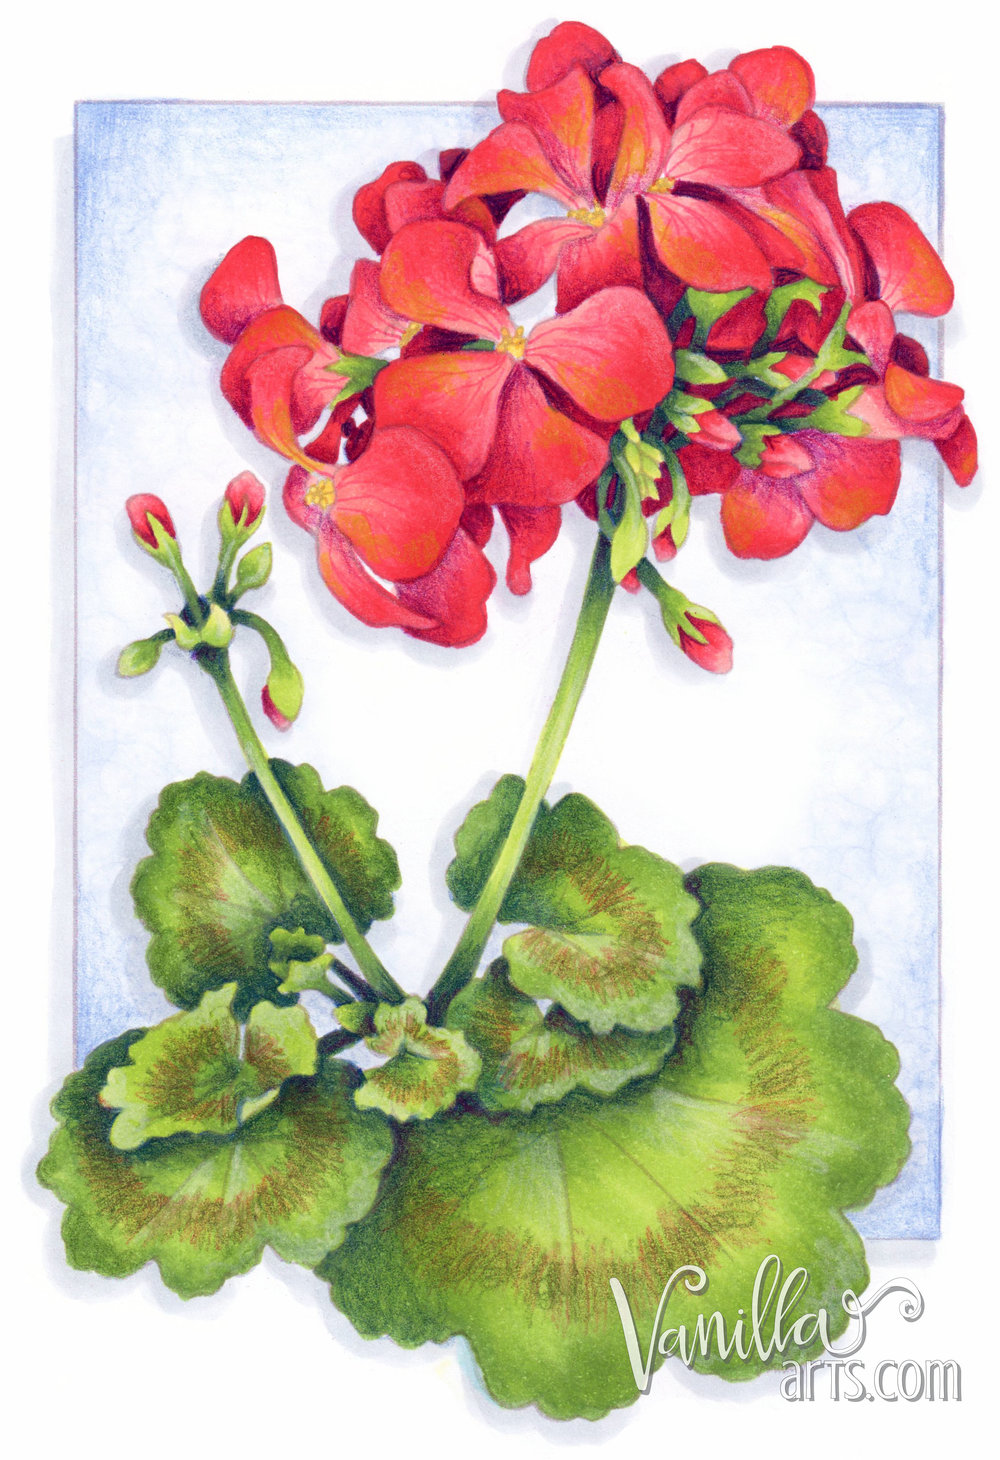 """Get your FREE copy of the """"Scarlet Geranium"""" digital stamp in May 2017. Join the Free Digi Club for a new stamp every month! 